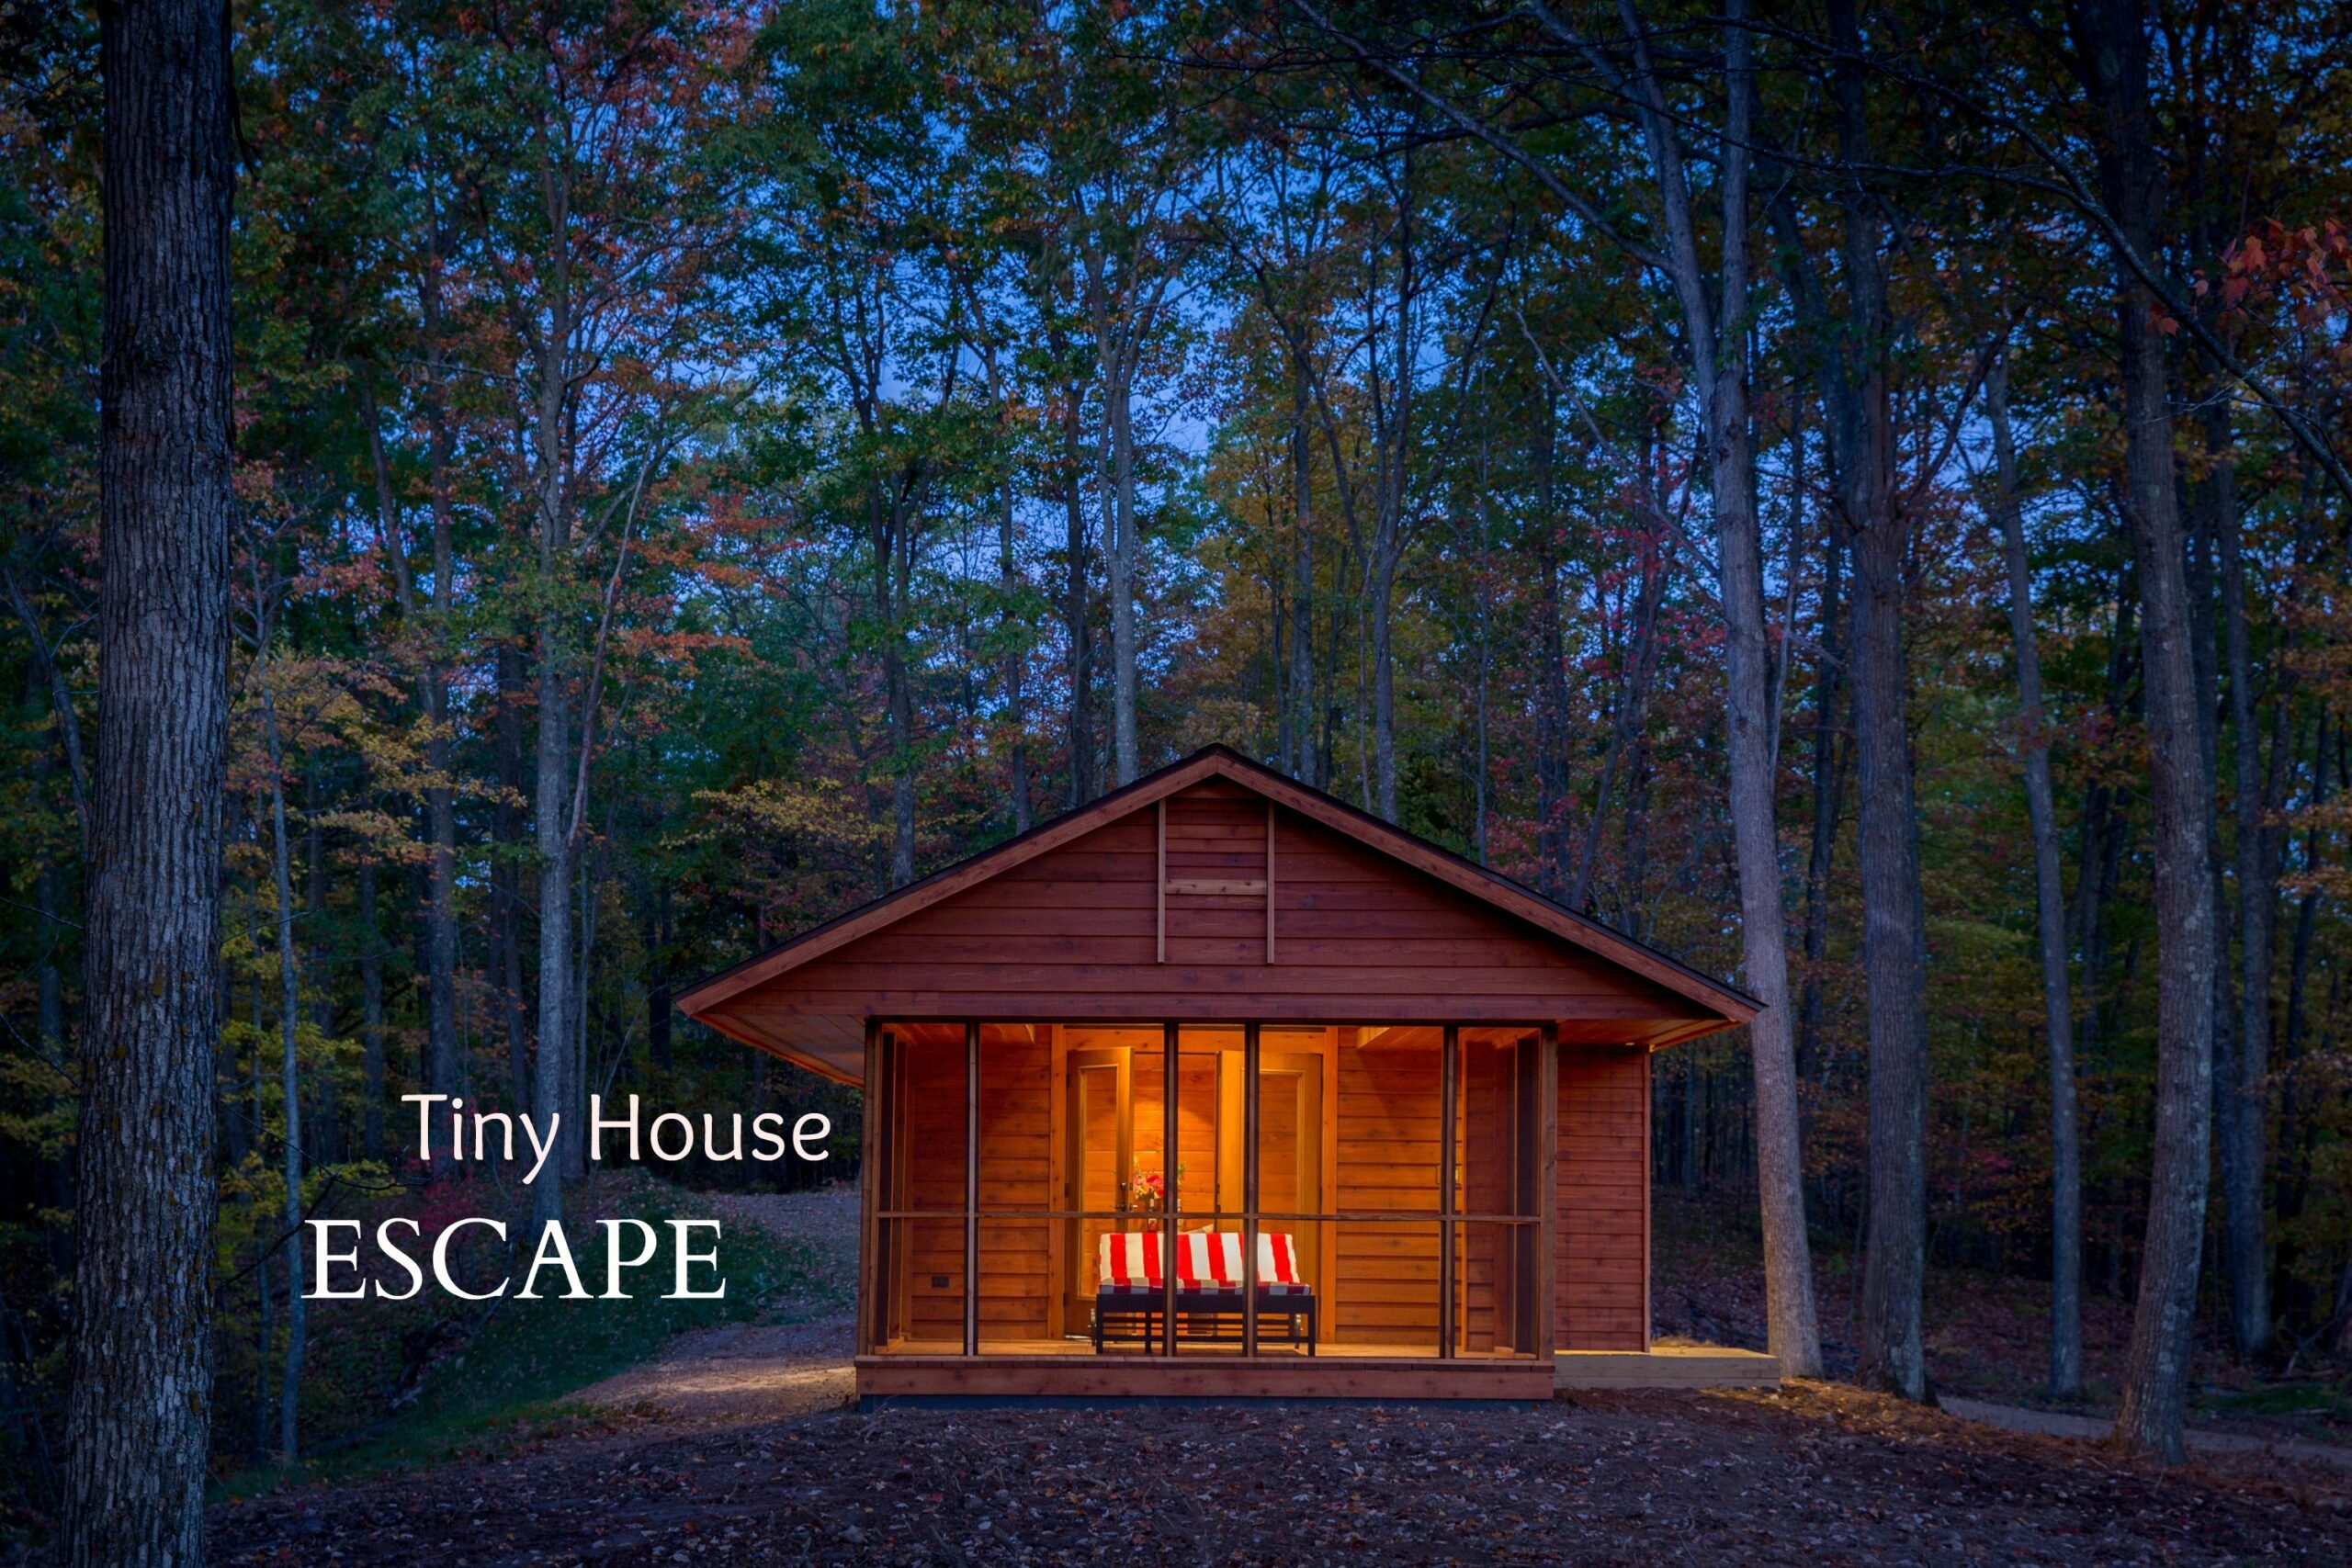 Tiny House ESCAPE In Canoe Bay Is A Cabin RV